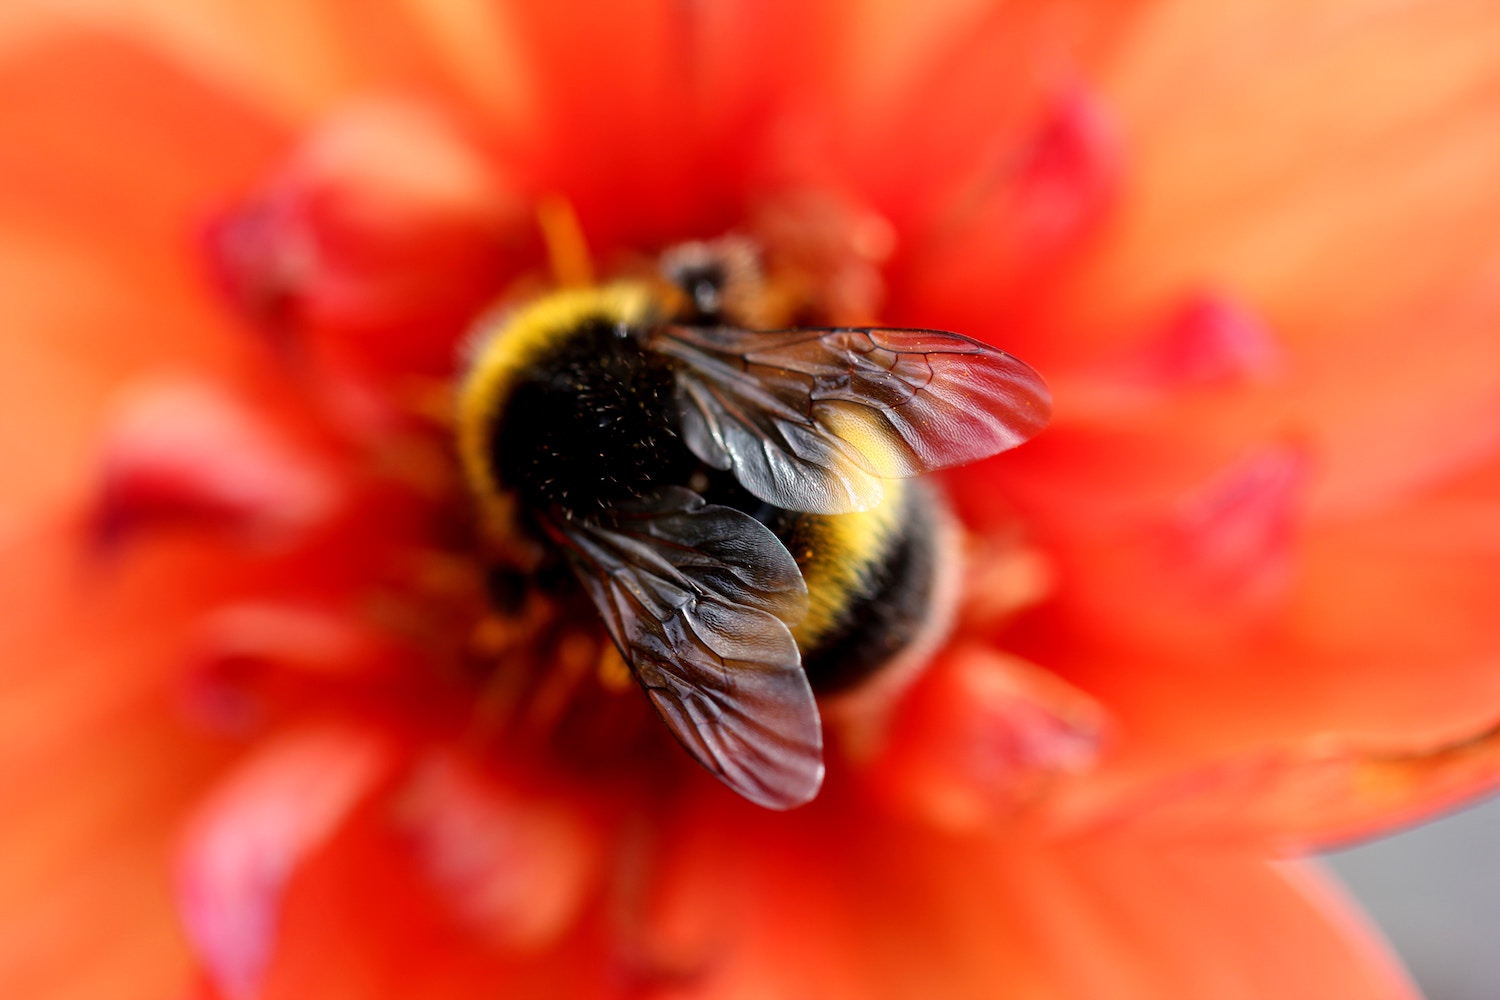 bee and red flower.jpg